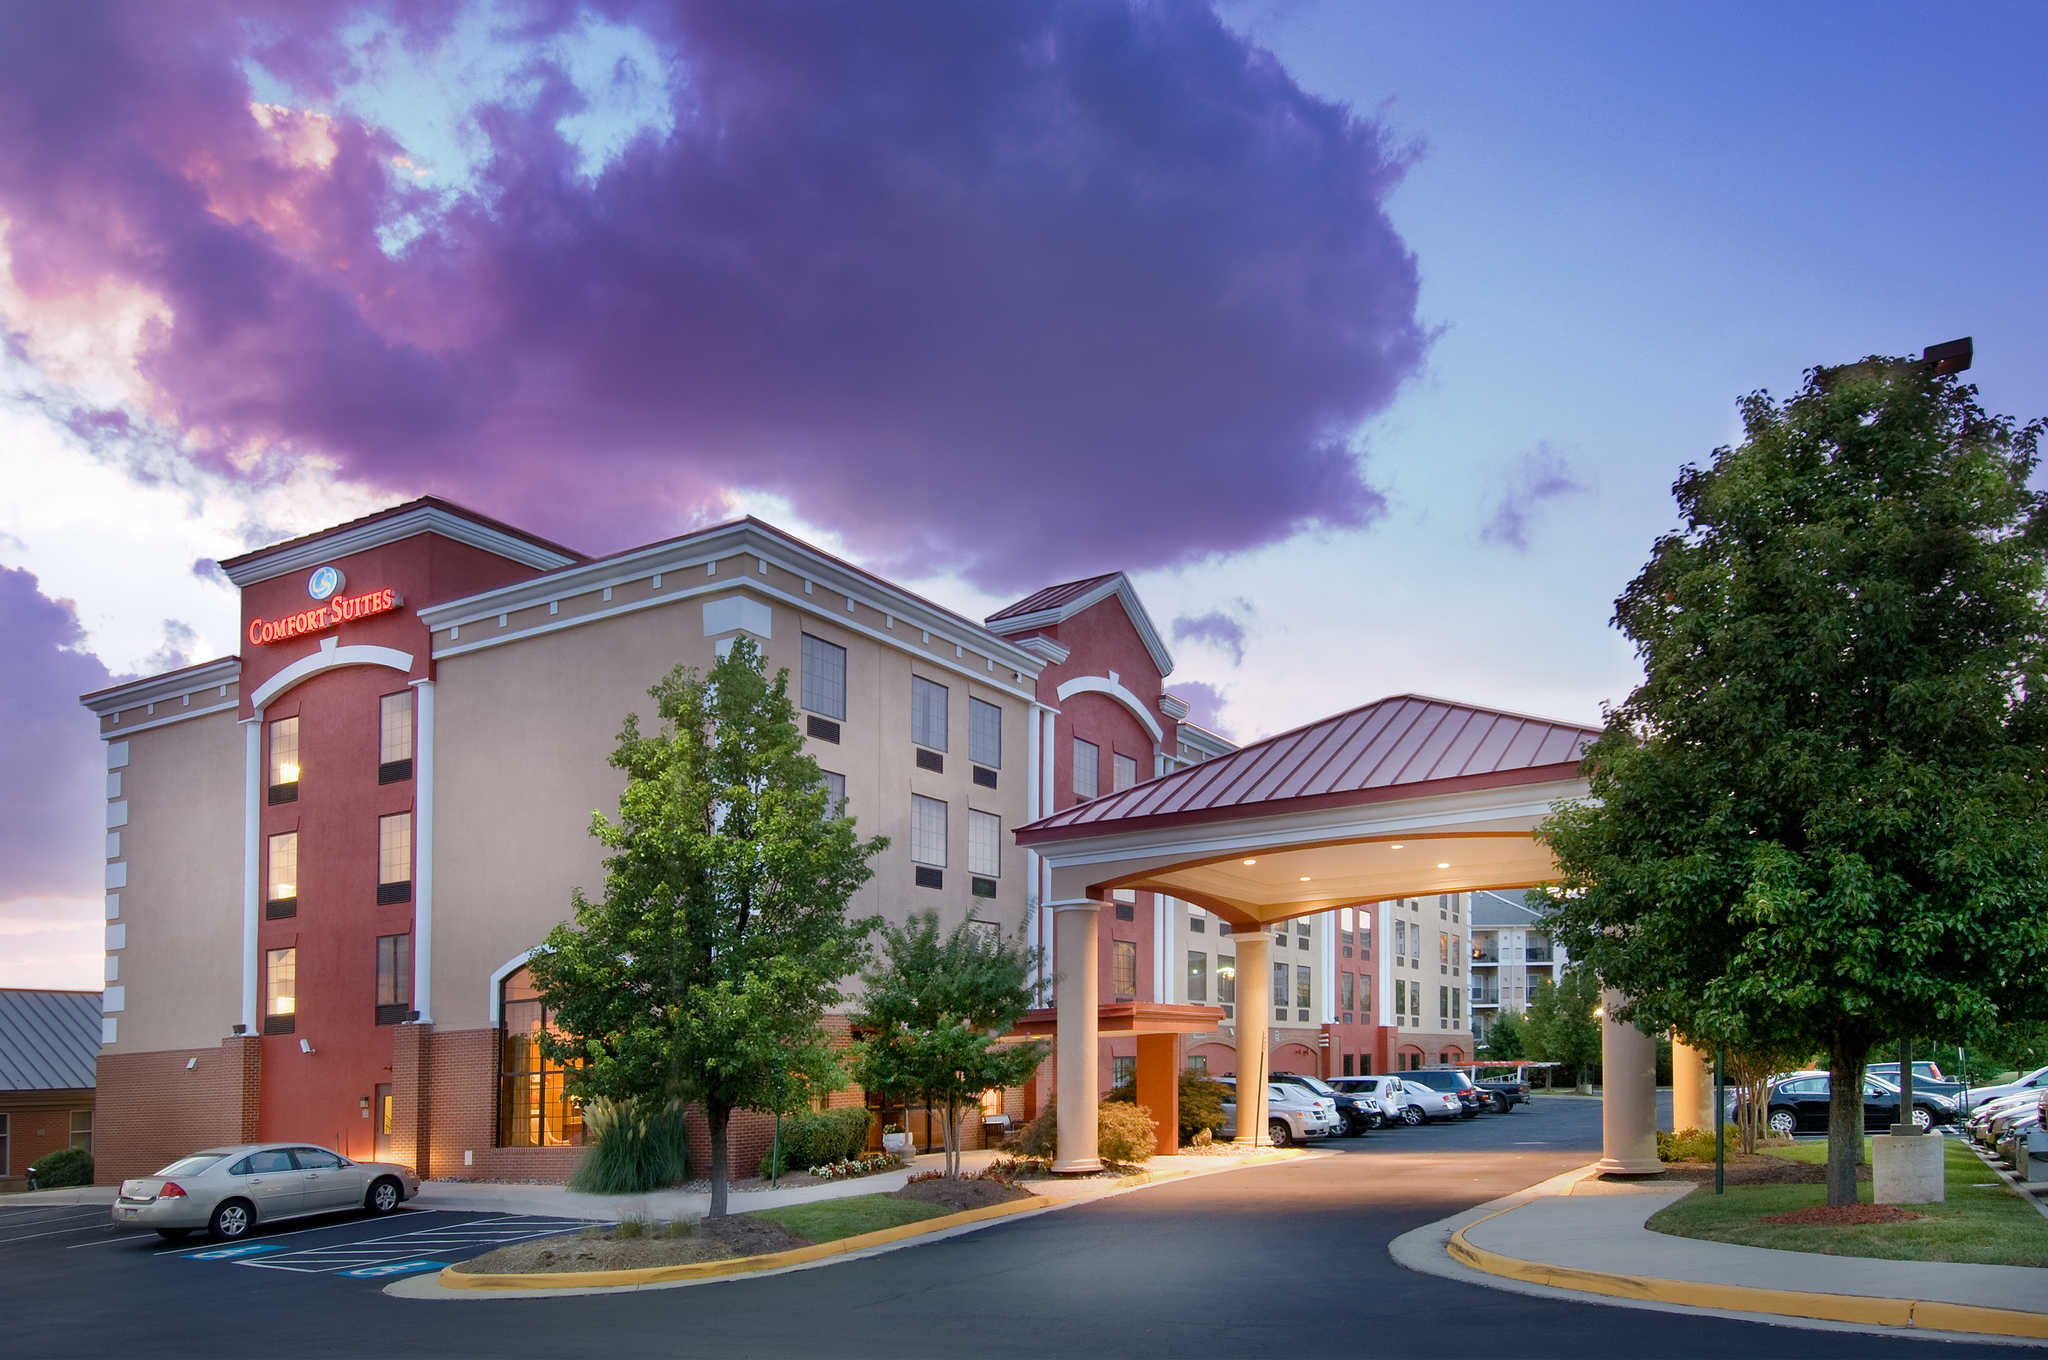 Comfort Suites Dulles Airport image 0